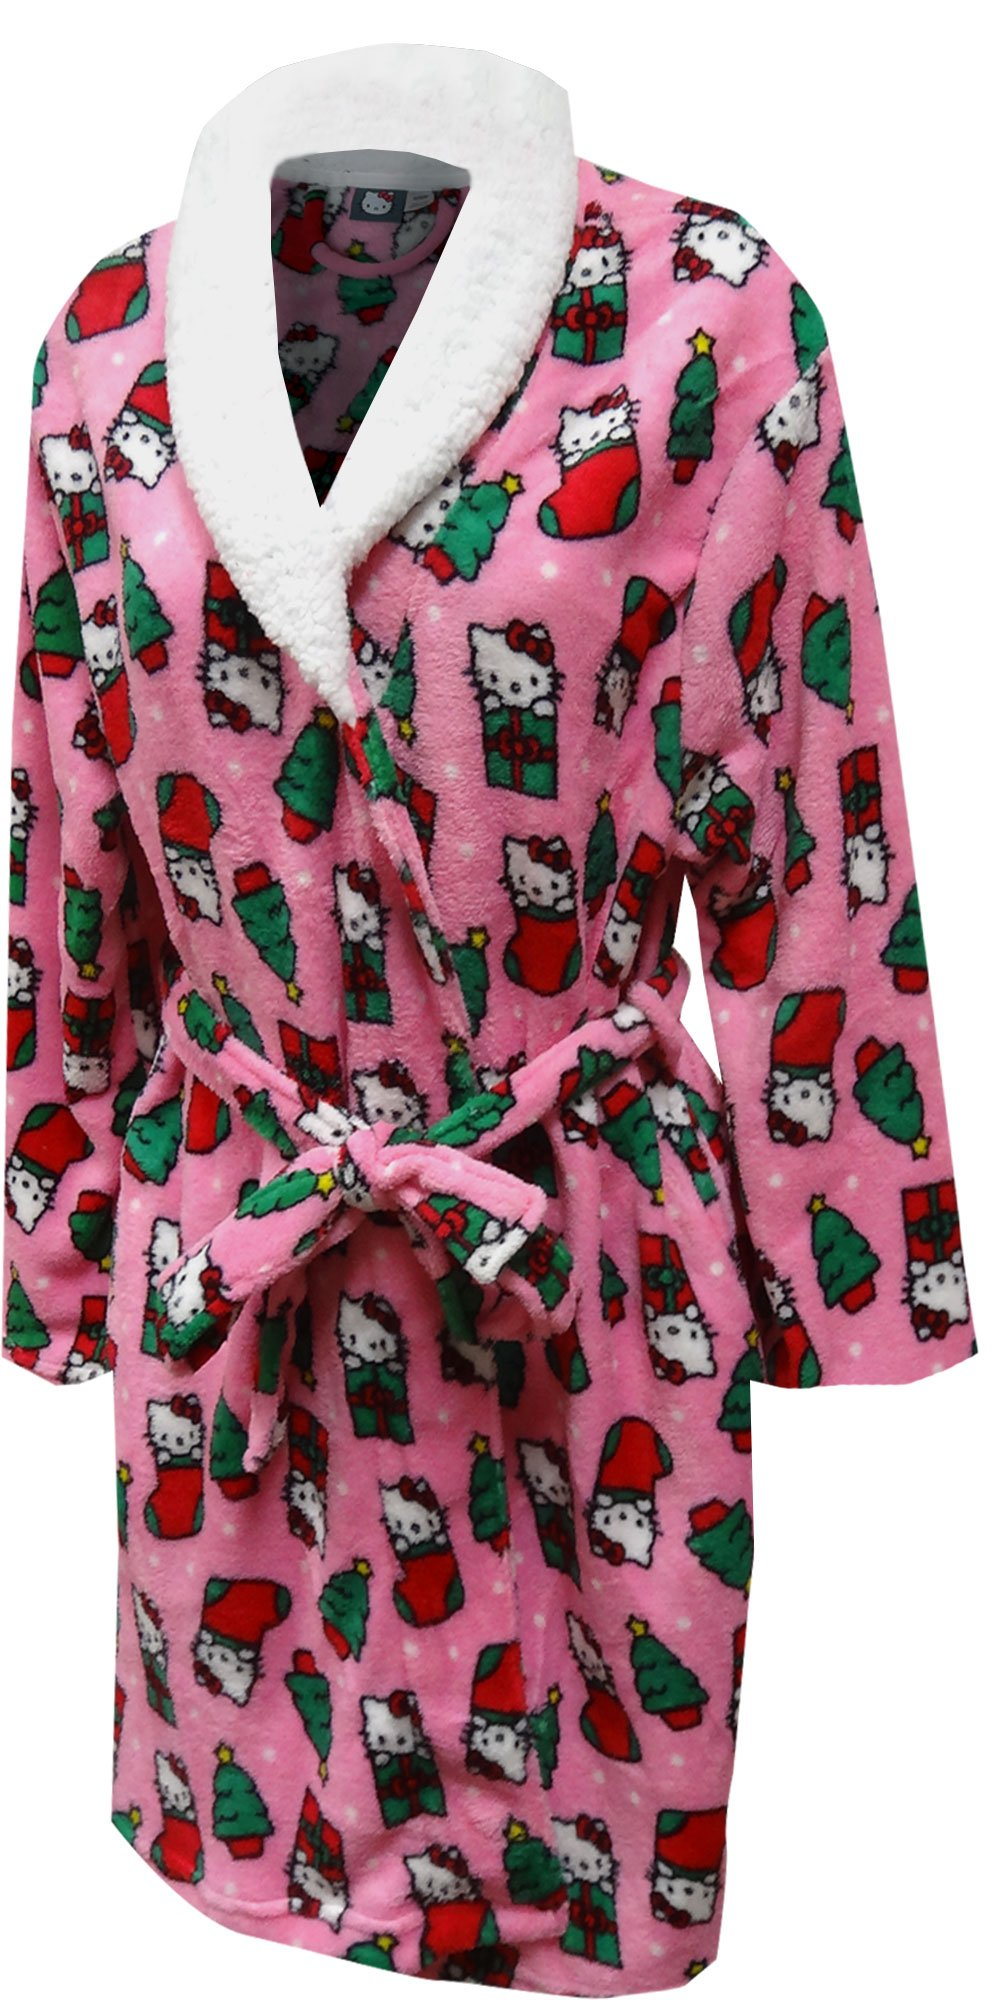 Hello Kitty Women's Printed Plush Robe, Pink, Large